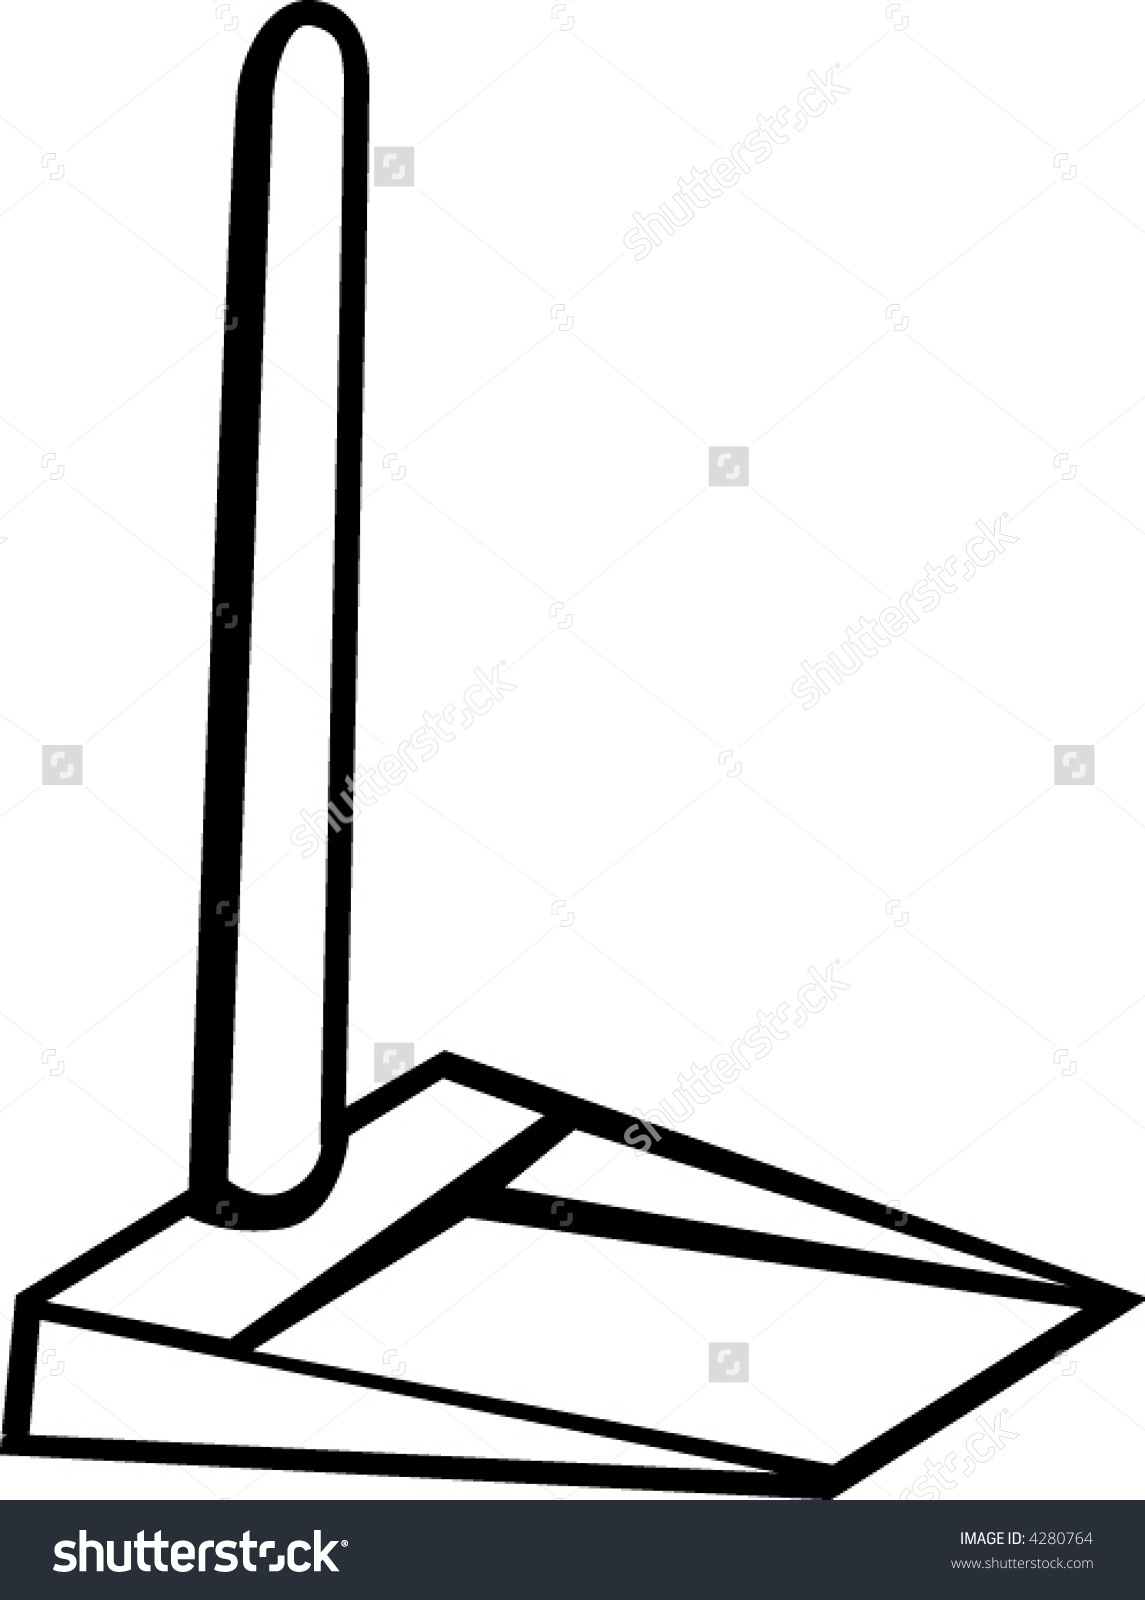 Broom clipart dustpan. And black white letters